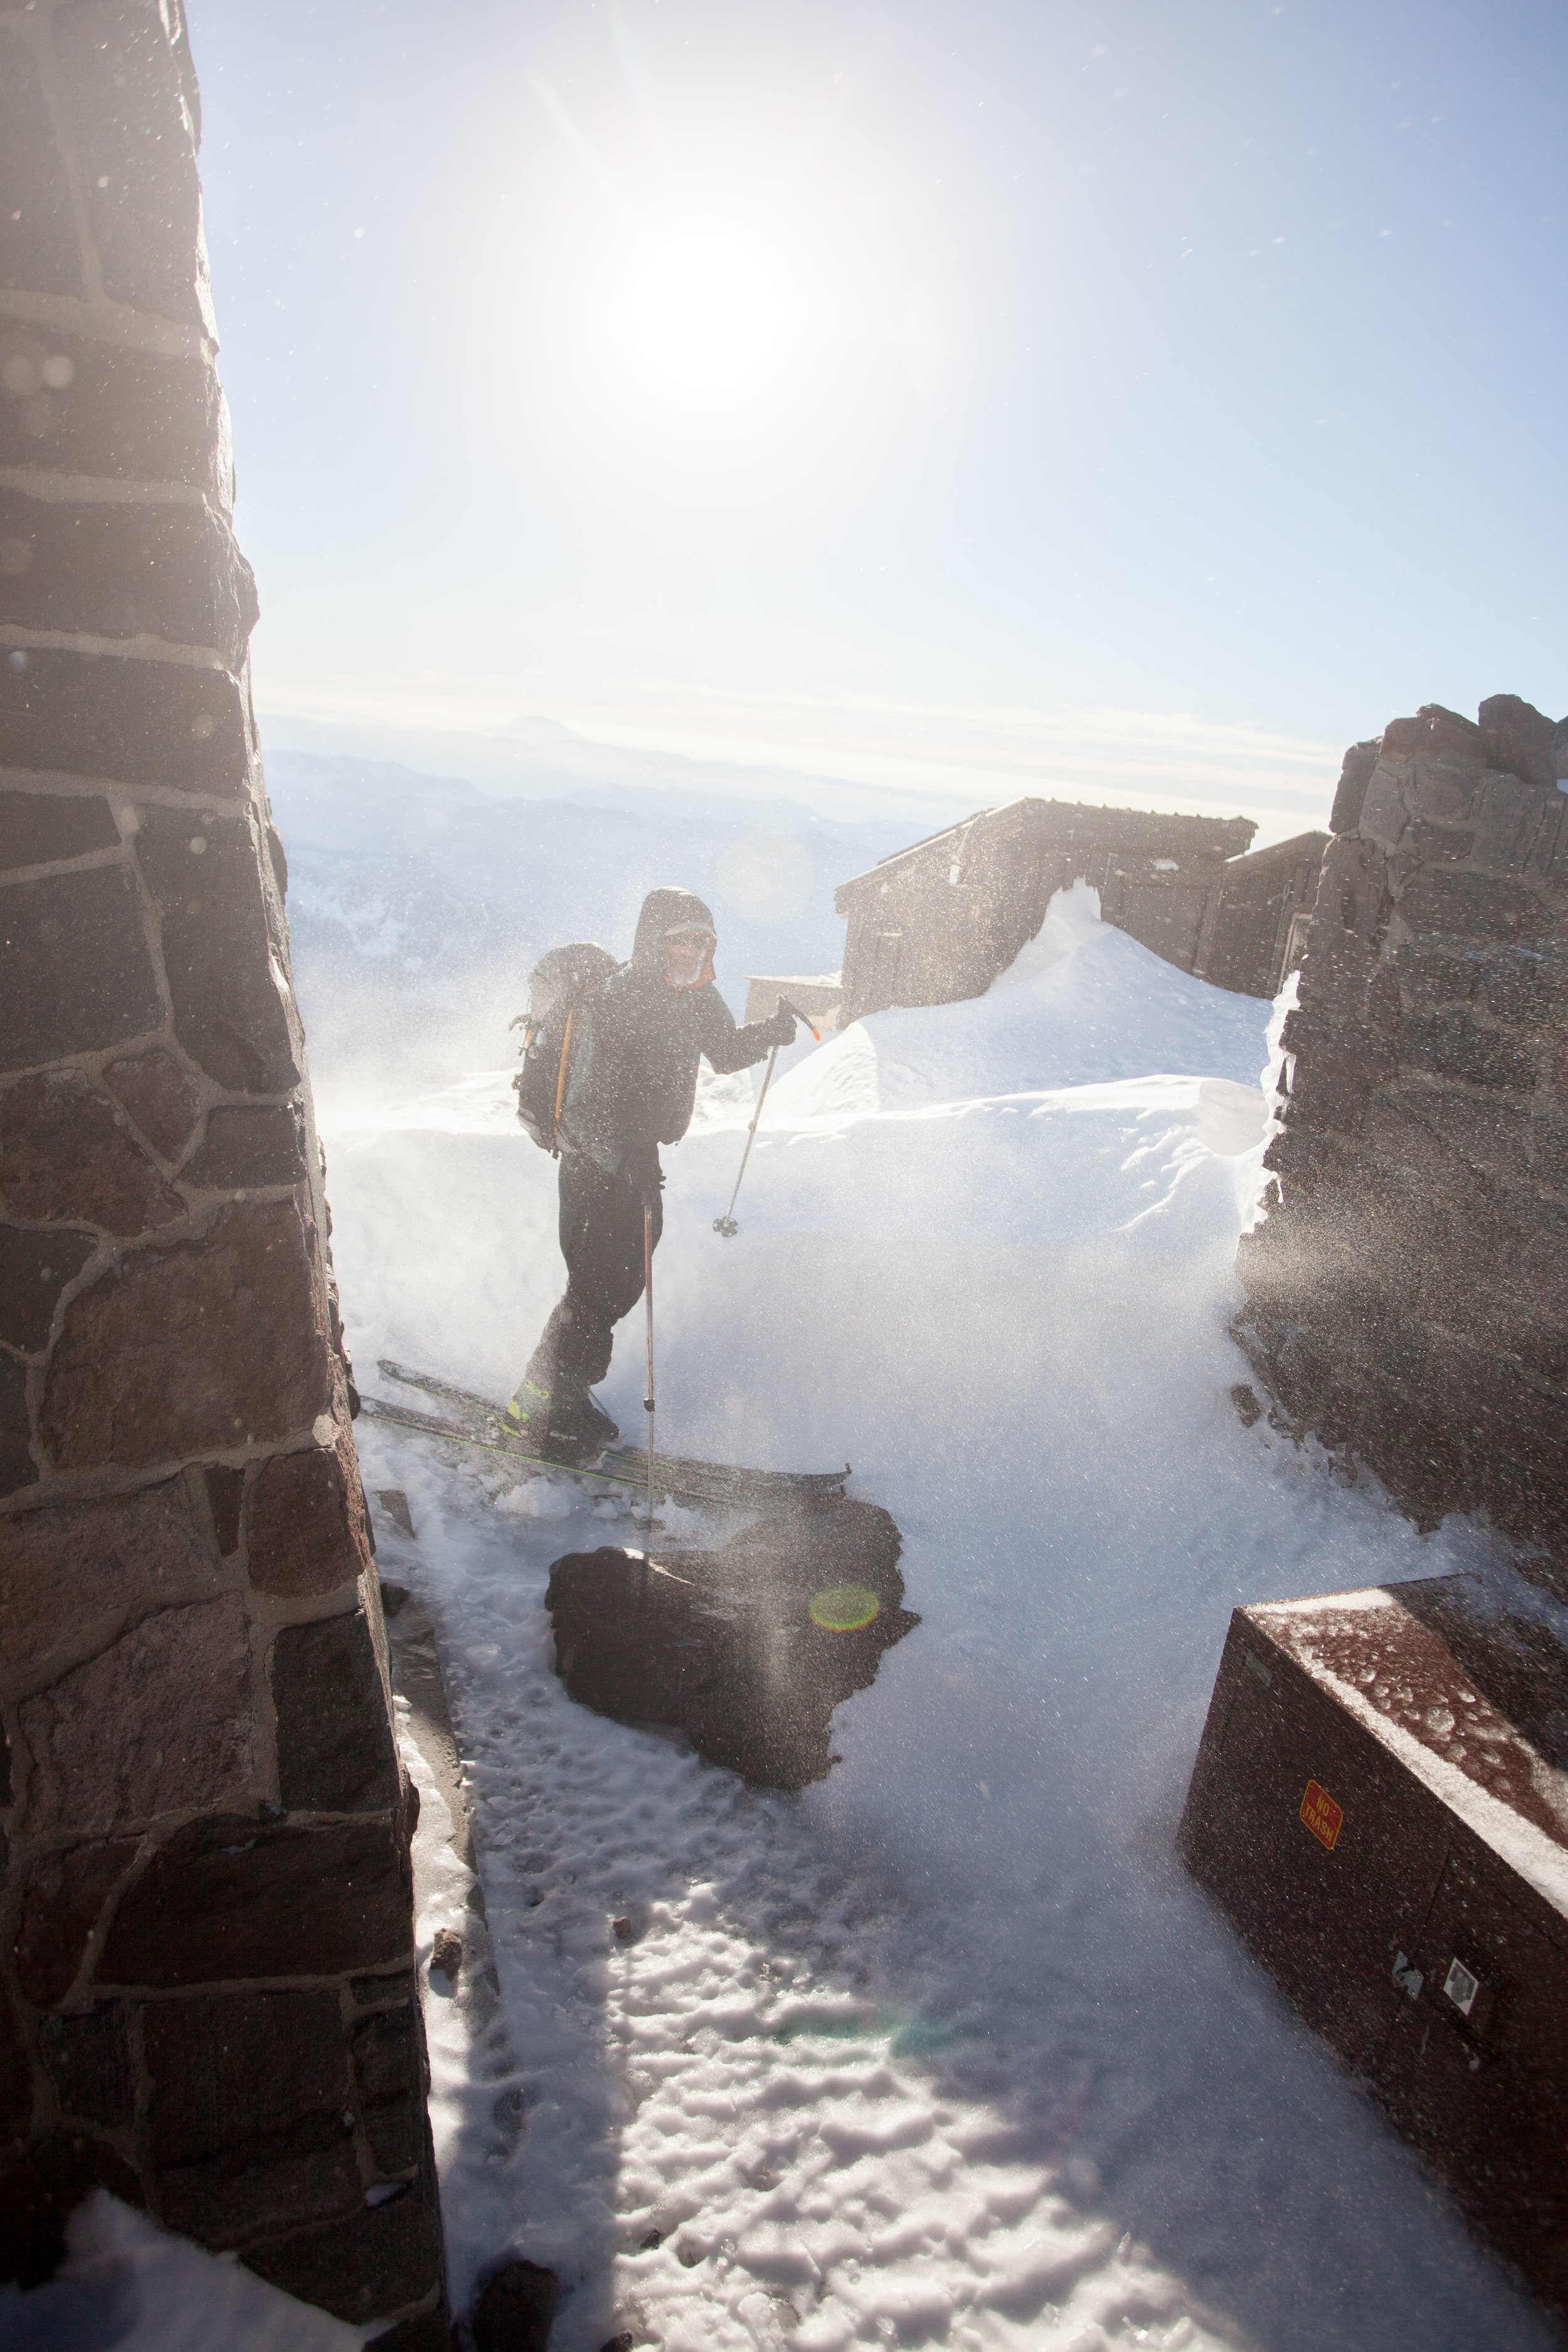 30 mph winds whipped us around at Camp Muir